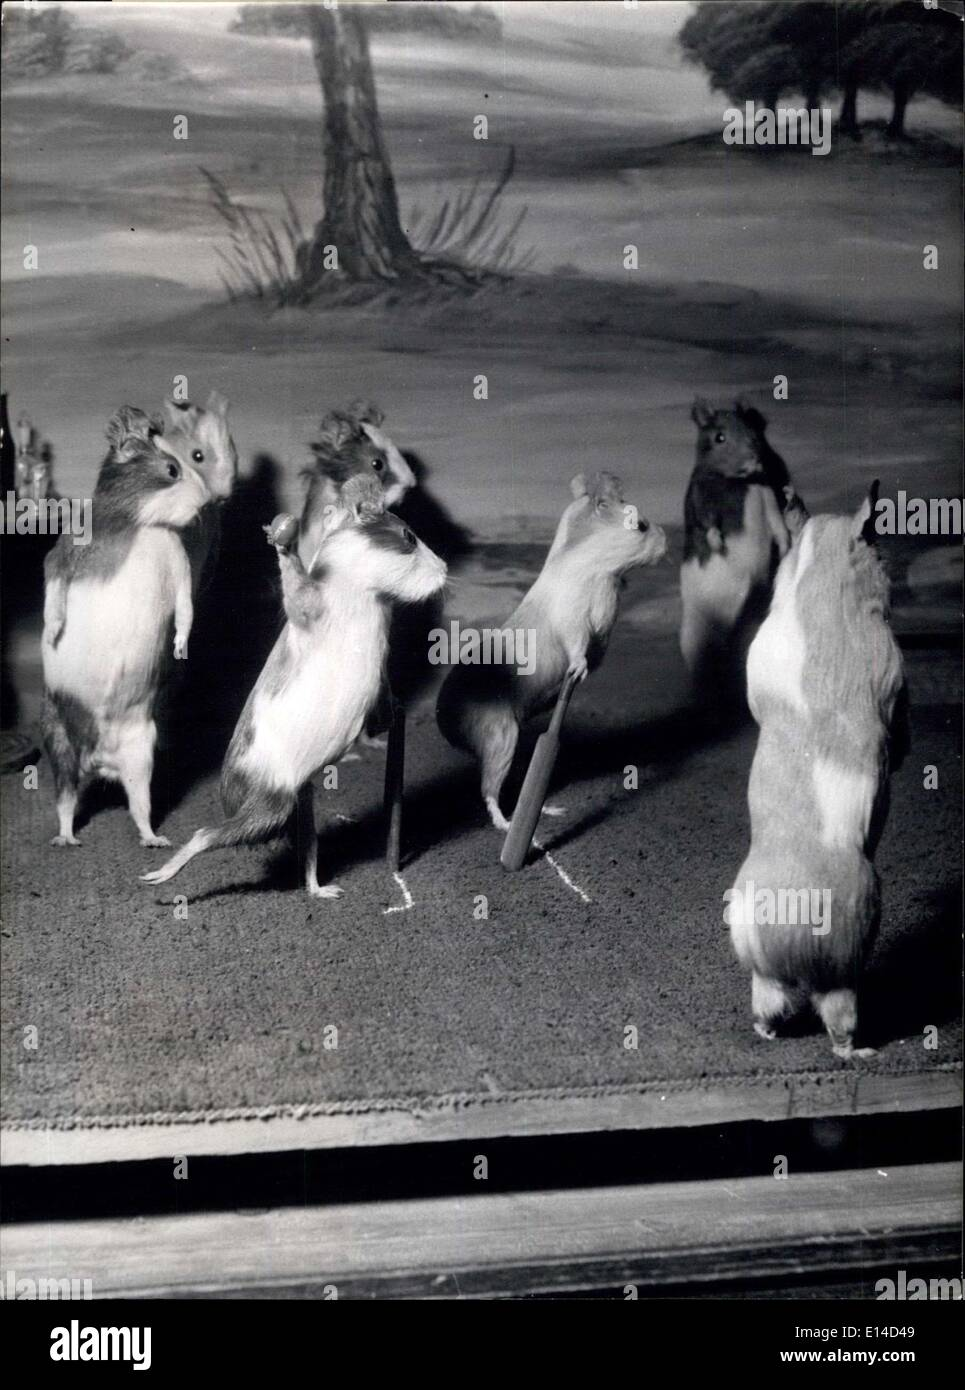 Apr. 17, 2012 - The Guinea Pigs Cricket Match: This is another view of the tableau of a village fete, and reveals the skill with which Potter used the taxide art to transmit his ideas. Expressions, posture, accuracy of detail in the scenery and etceteras are sure indication of genius. - Stock Image